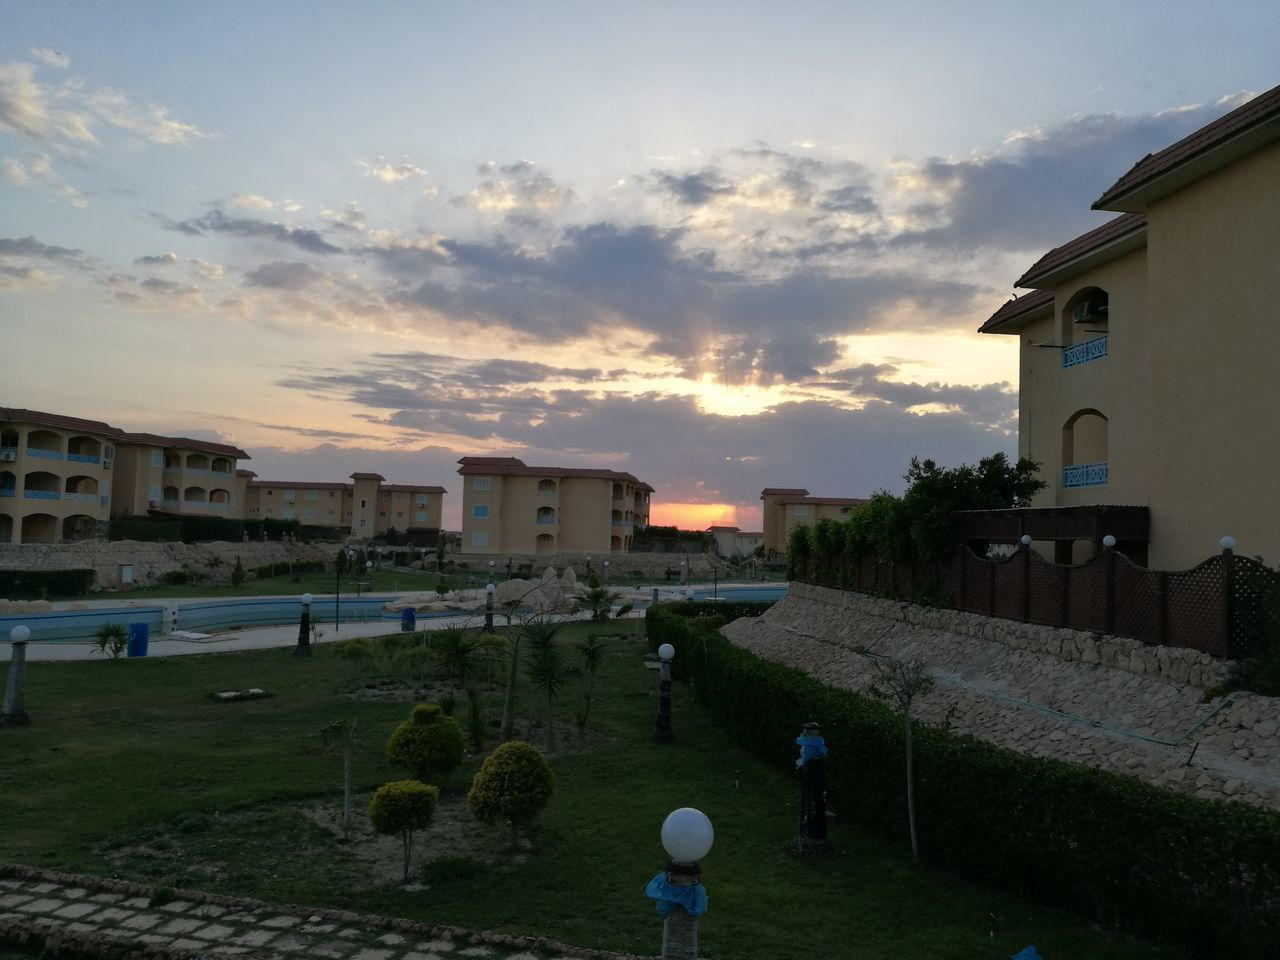 built structure, architecture, building exterior, sky, cloud - sky, house, outdoors, sunset, no people, residential building, grass, day, nature